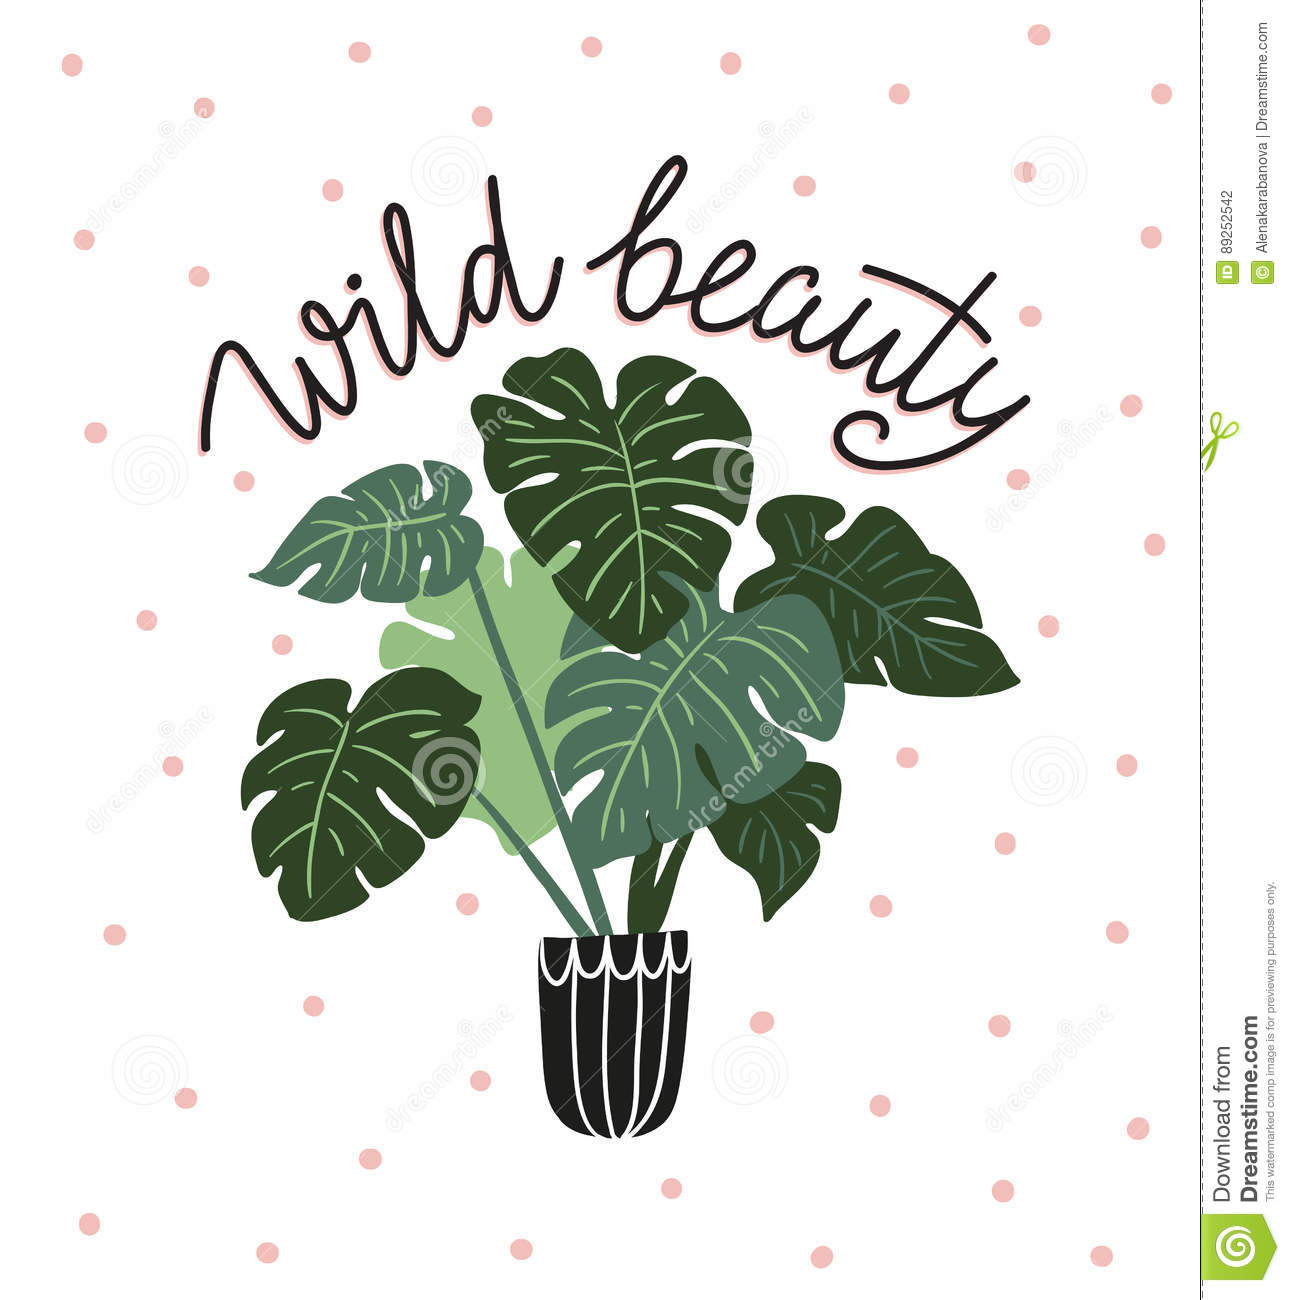 Scandinavian style illustration with monstera, vector print design with lettering - `wild beauty`.